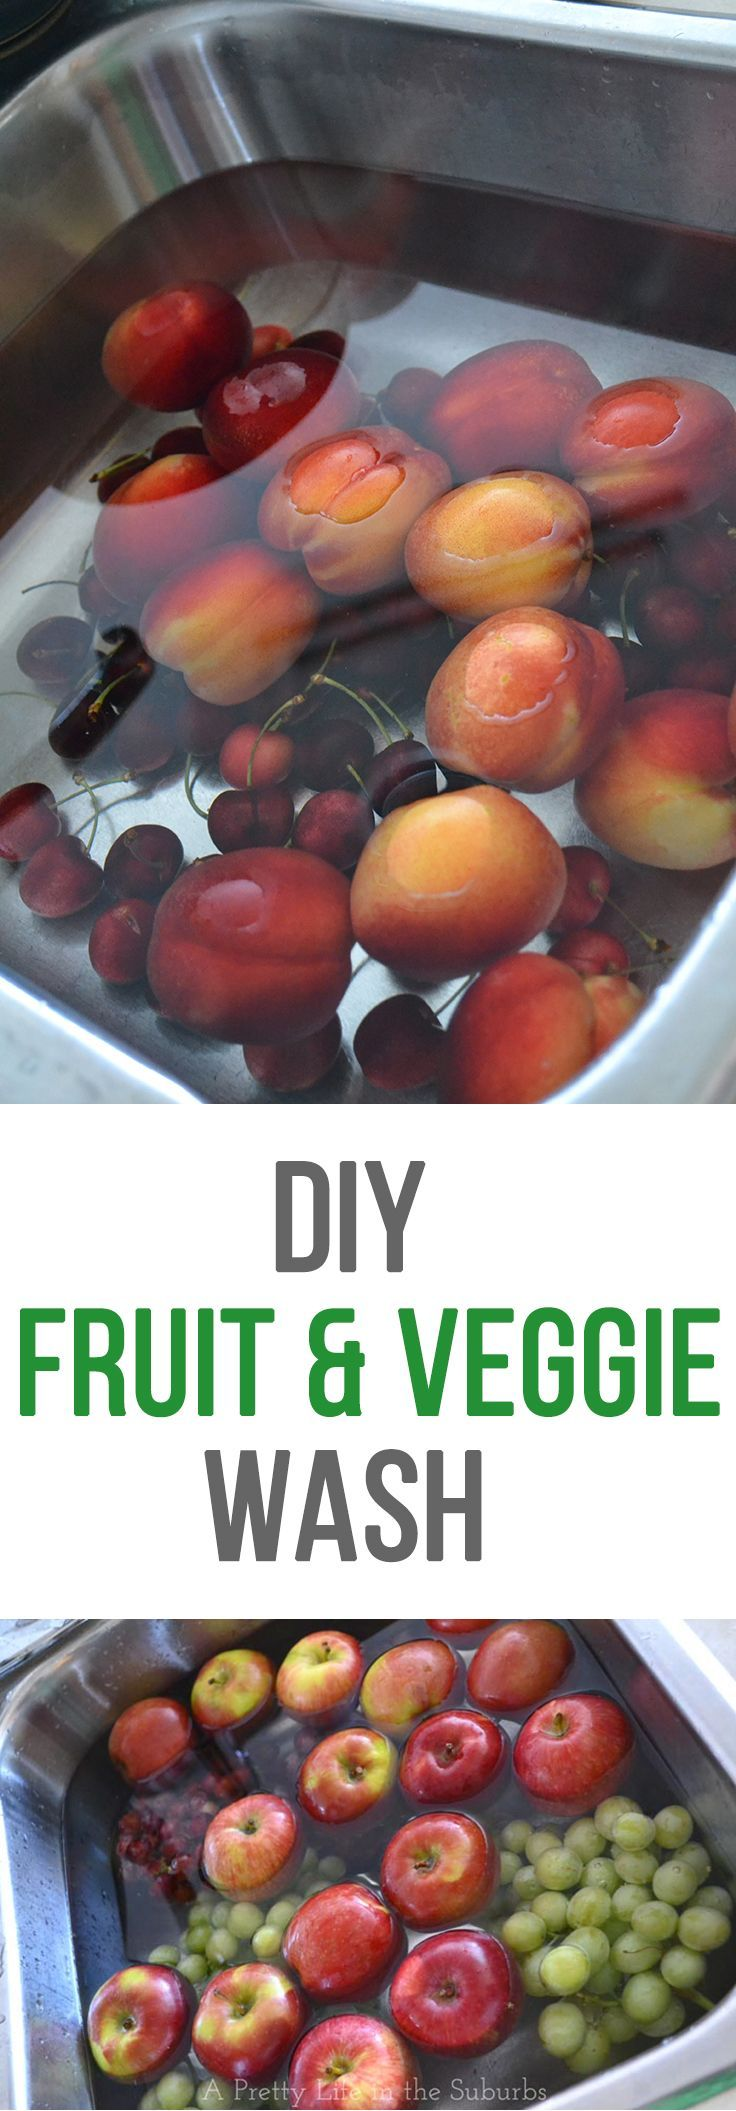 DIY Fruit & Veggie Wash - Here is a simple way to naturally (and inexpensively) clean your fruit & vegetables.